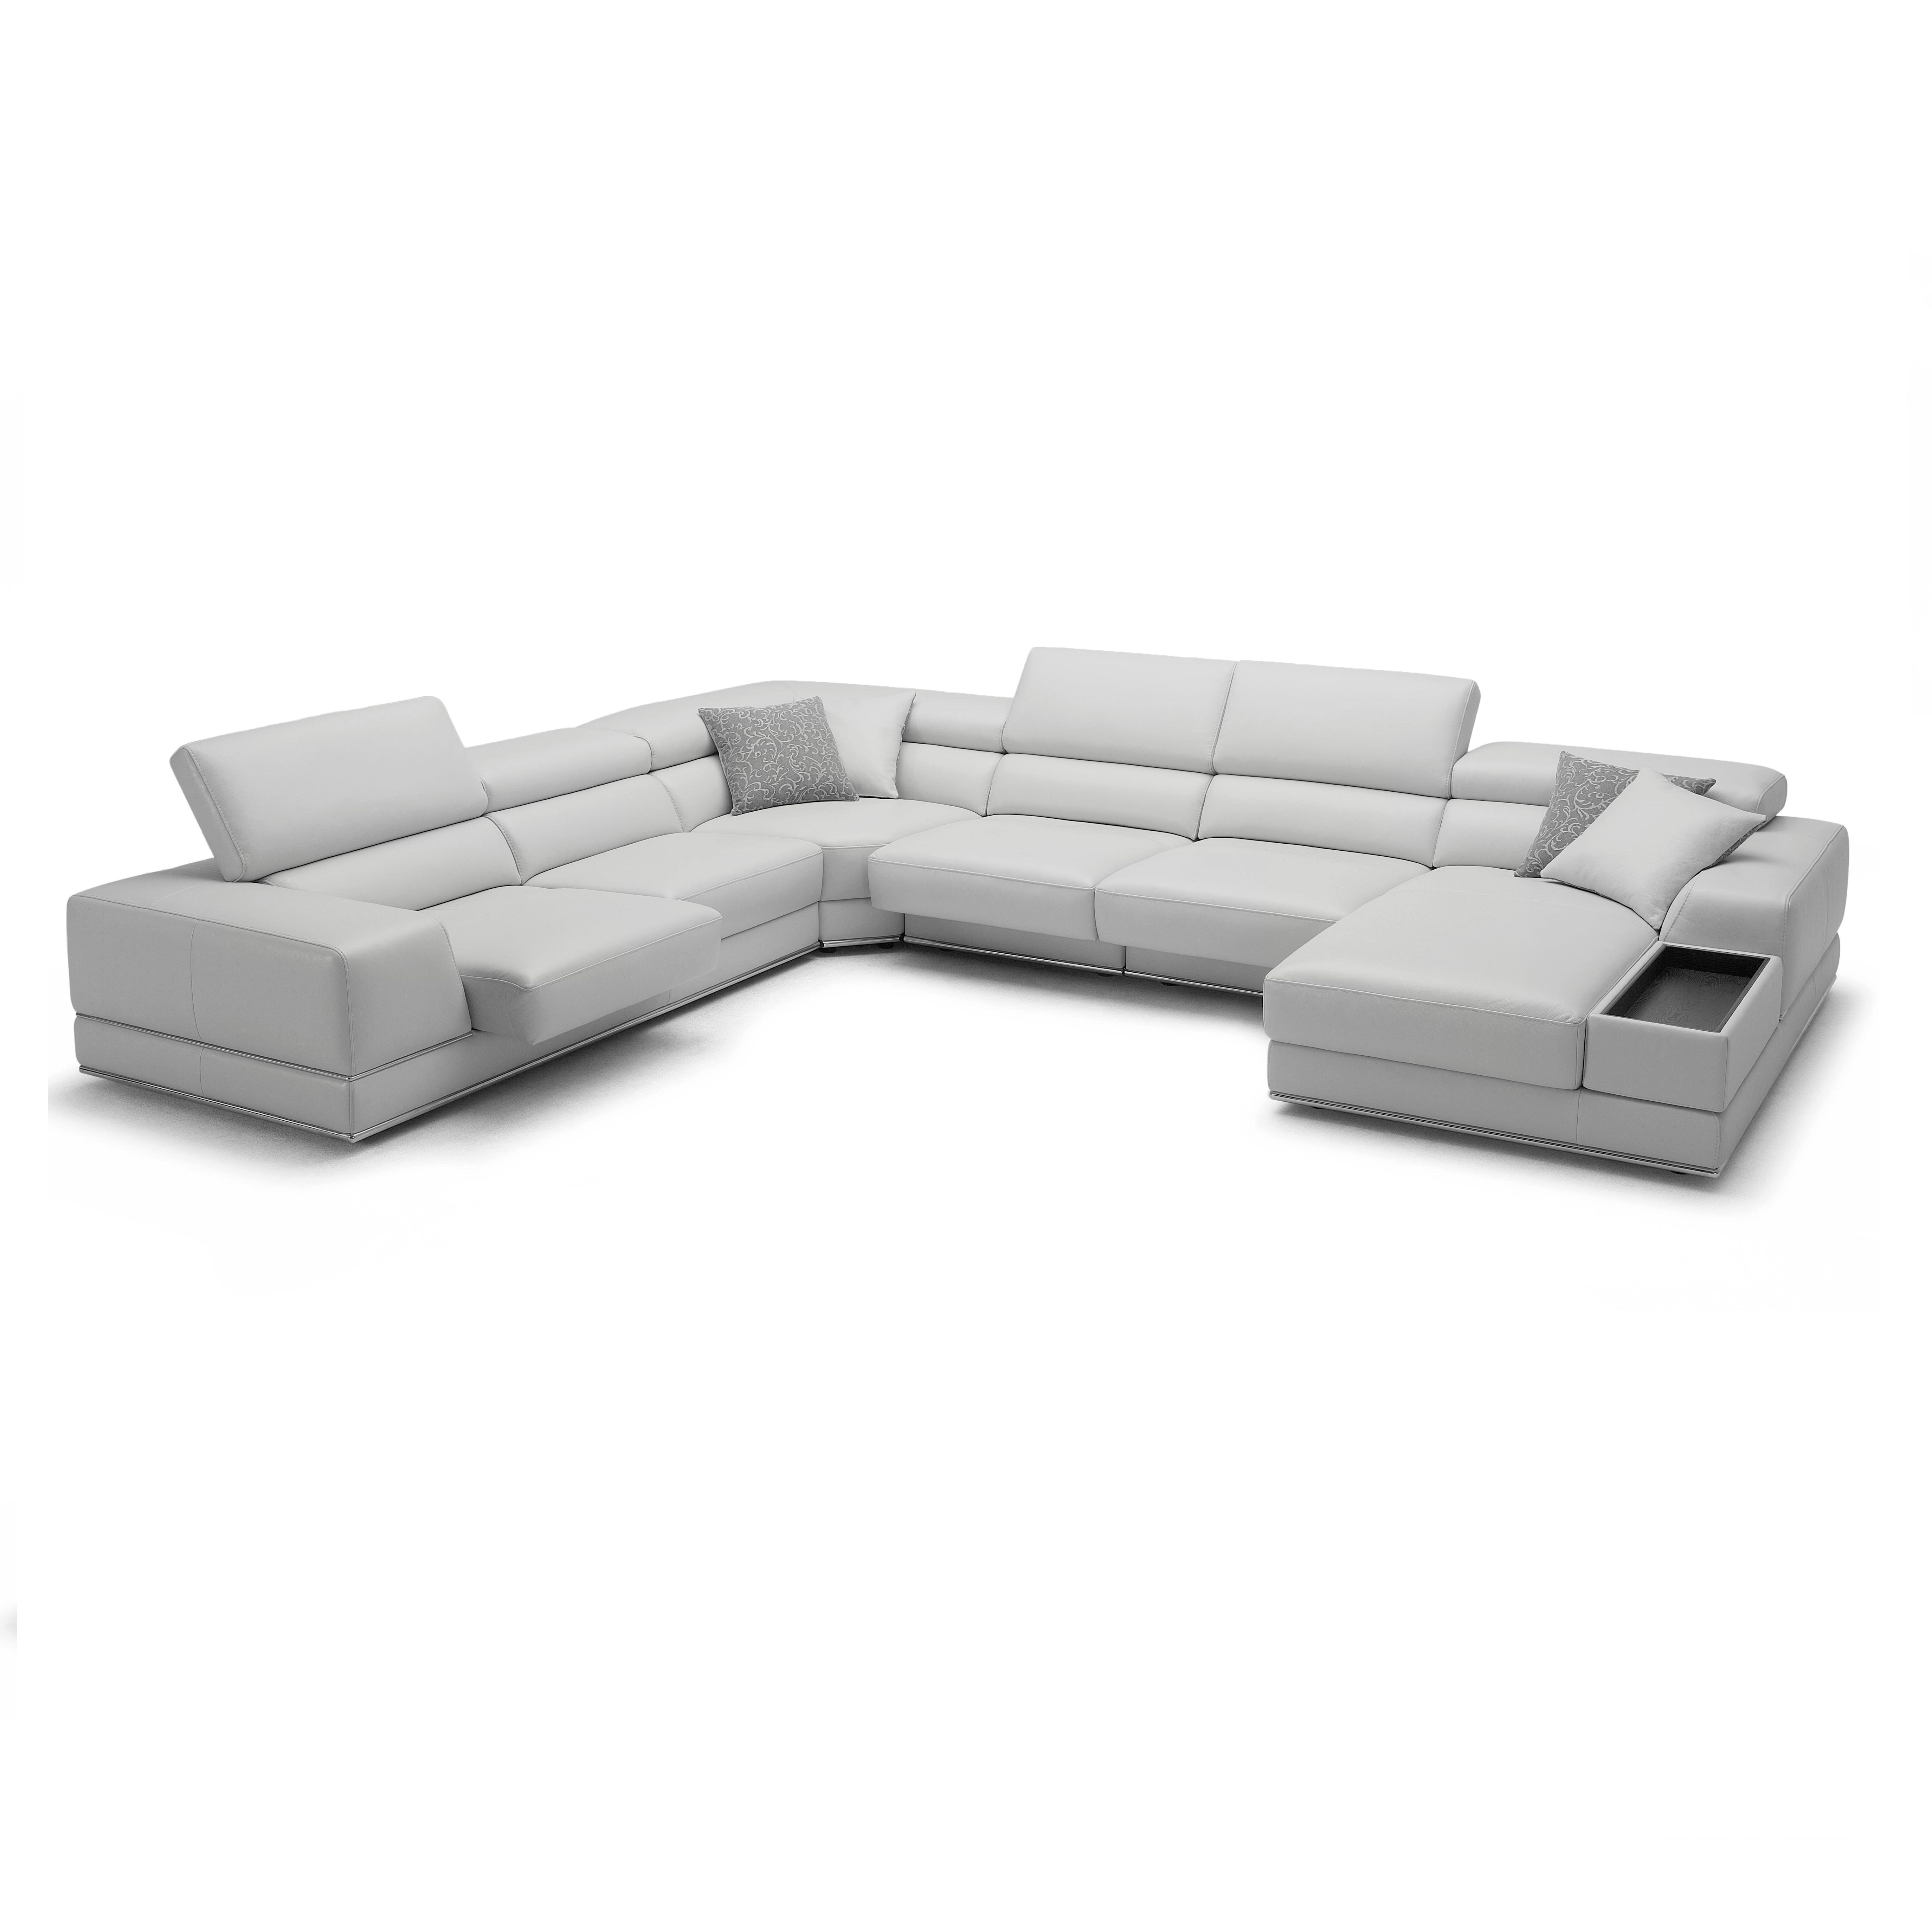 bergamo sectional leather modern sofa gray intex inflatable pull out queen bed mattress complete your room with the large